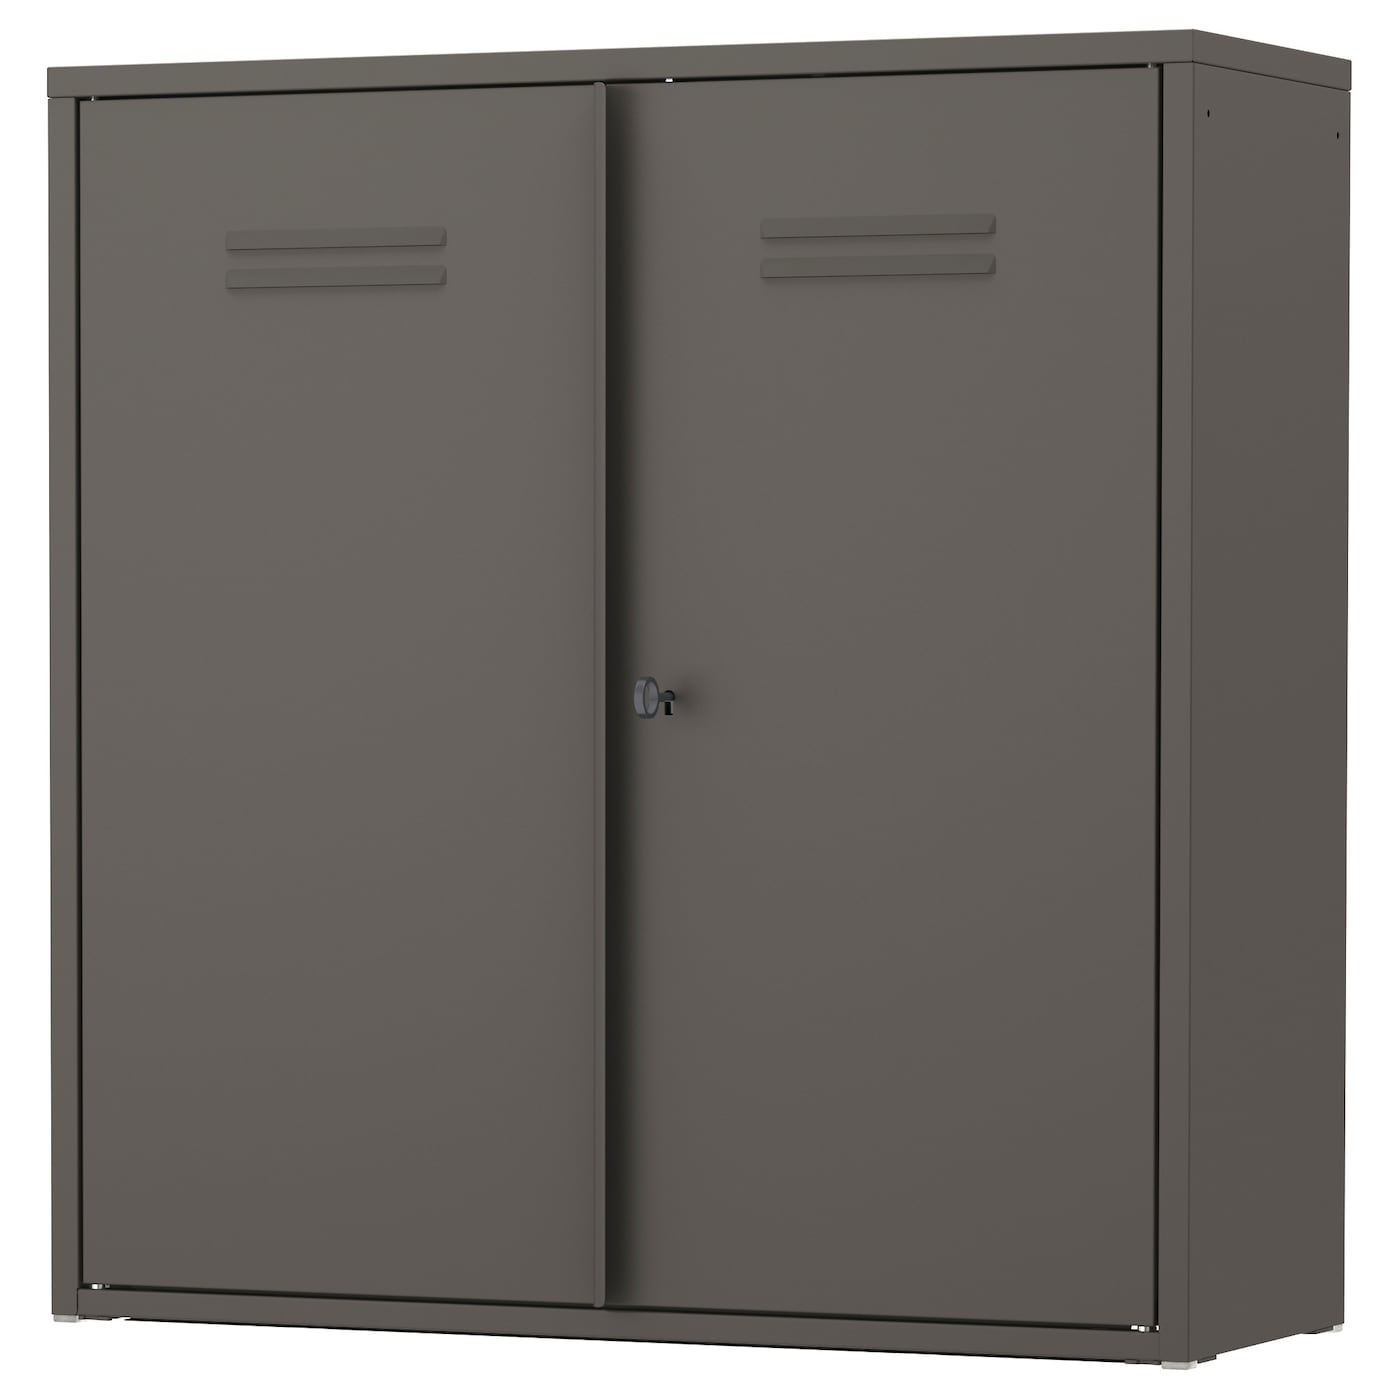 Spruce Up Your Kitchen With These Cabinet Door Styles: IVAR Cabinet With Doors Grey 80 X 83 Cm